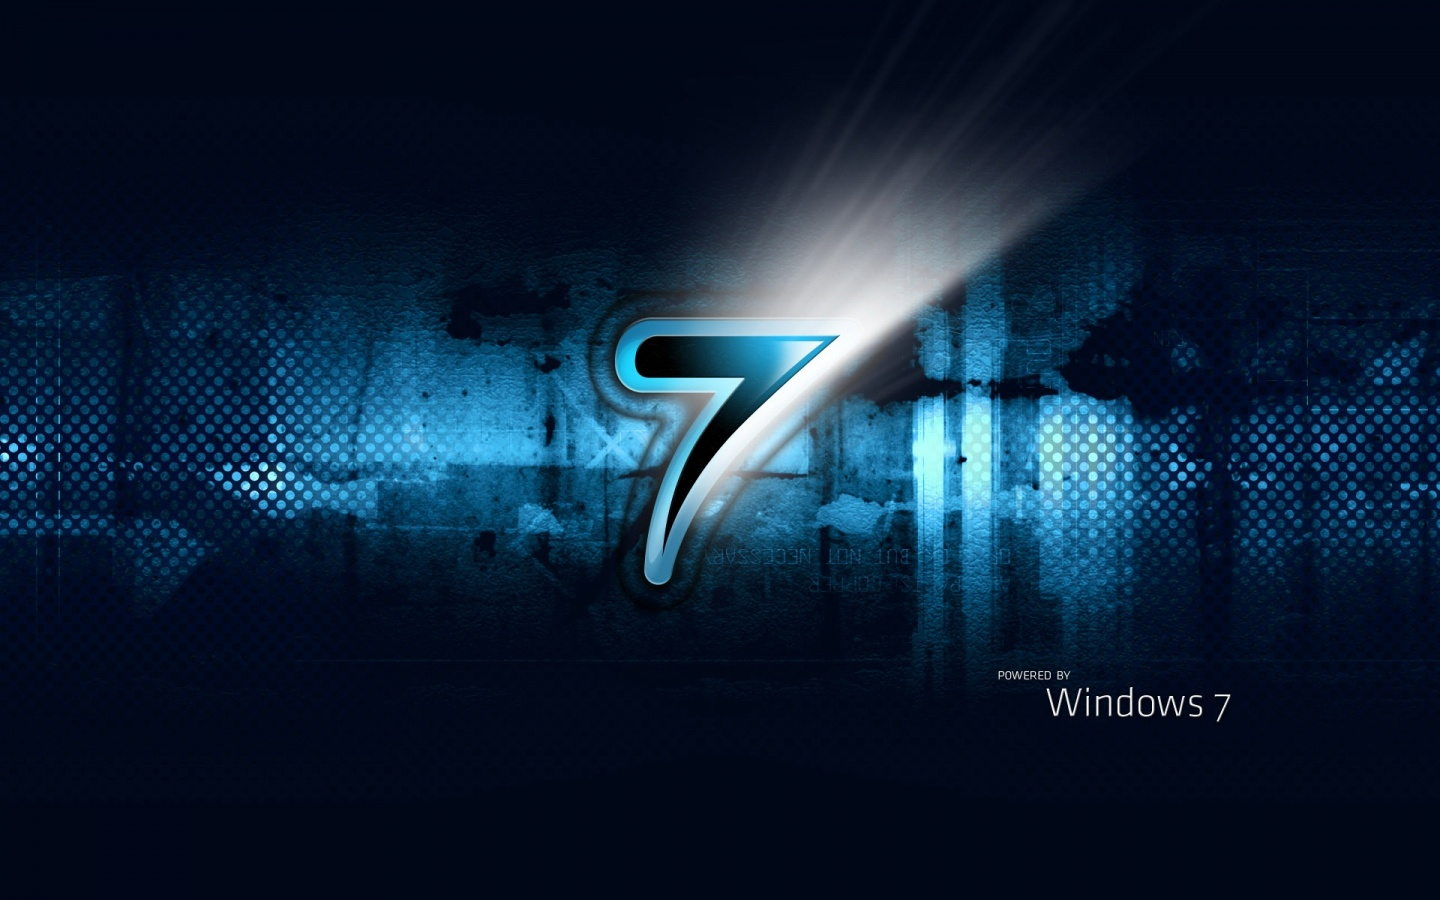 Info Wallpapers windows 7 hd wallpaper 1440x900